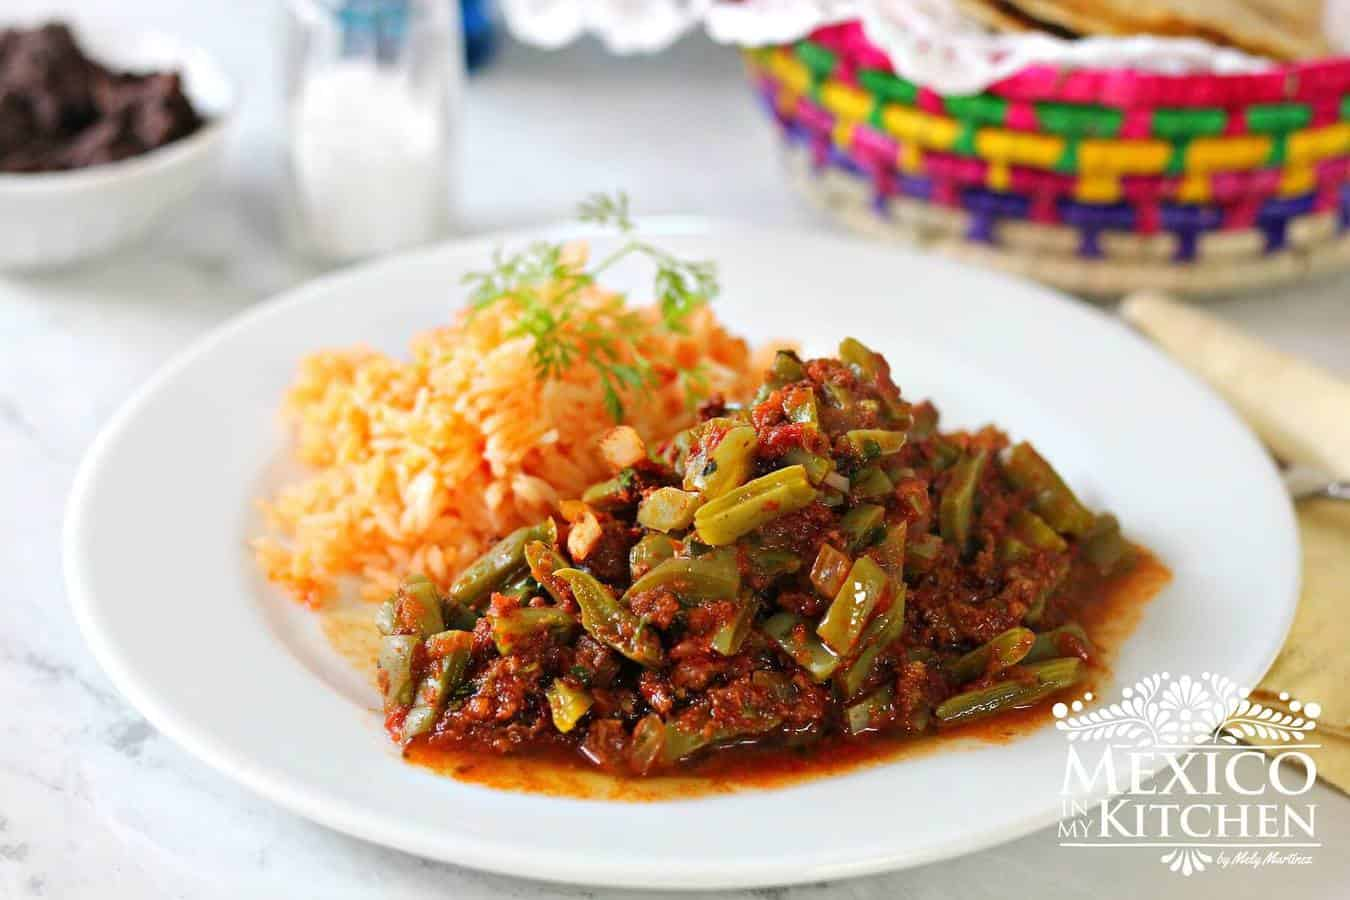 Nopales with chorizo.Tasty combination of nopales with chorizo in a spicy salsa.